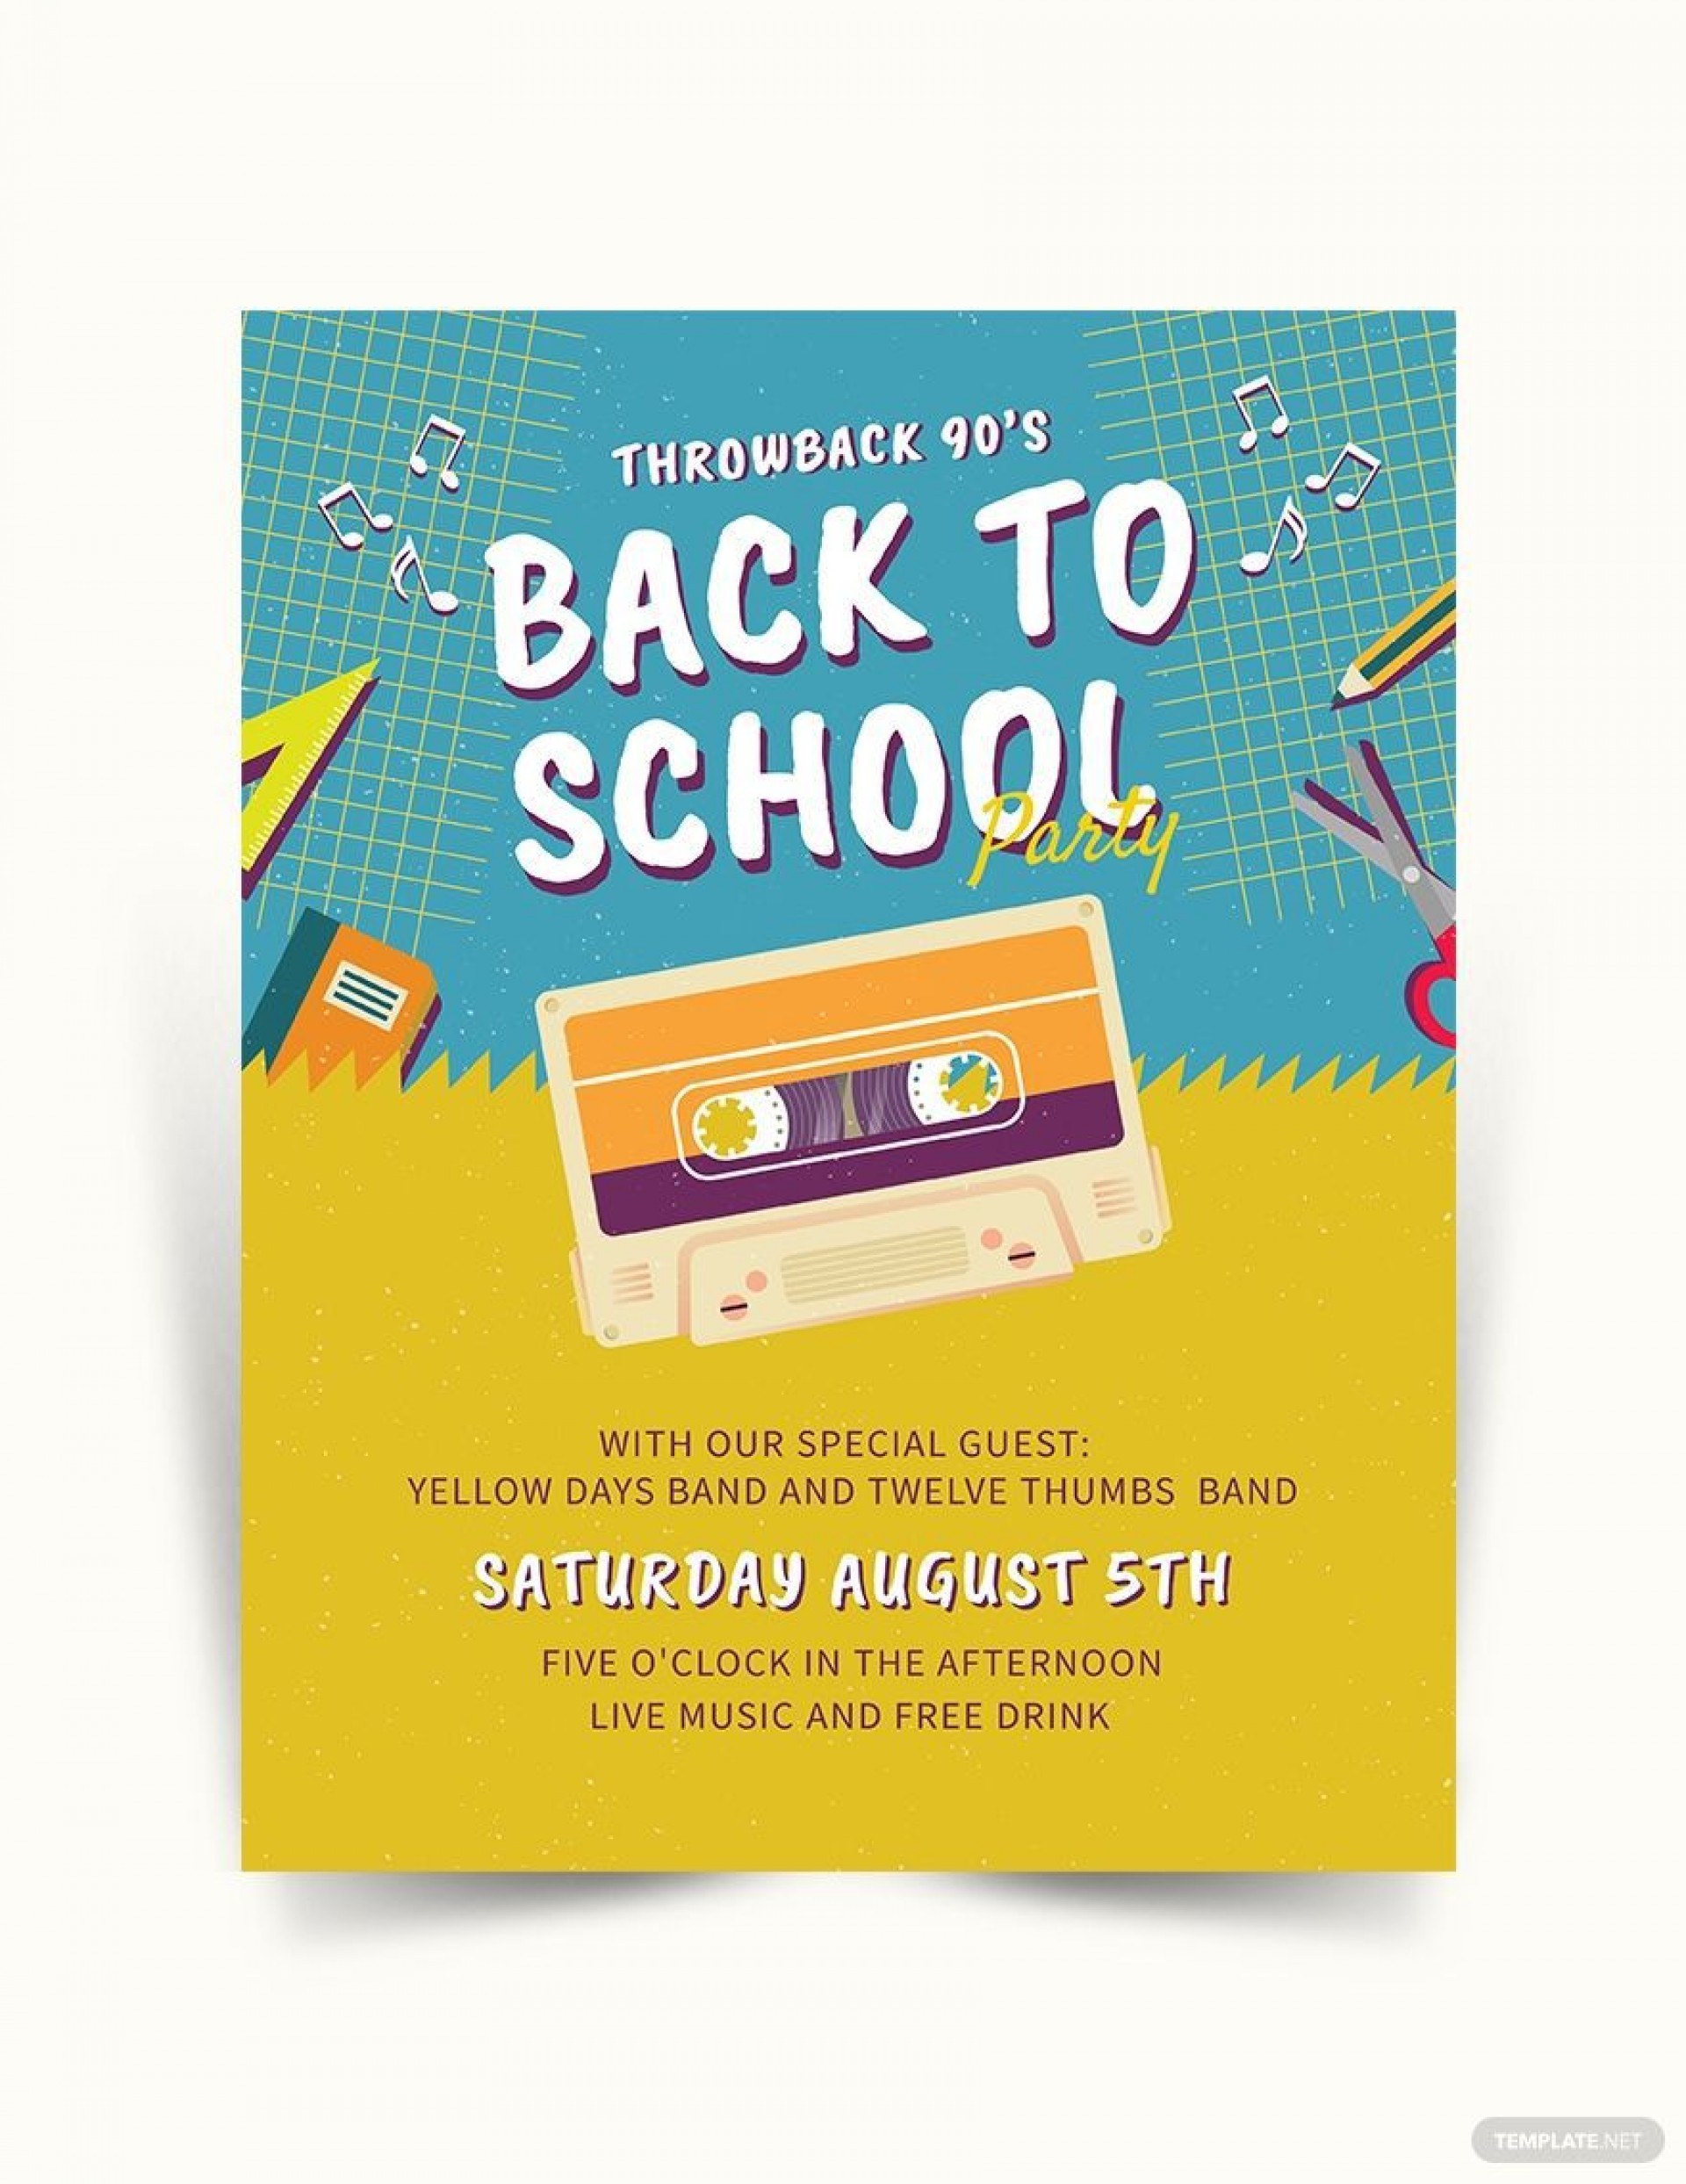 005 Rare Free Back To School Flyer Template Word Idea 1920